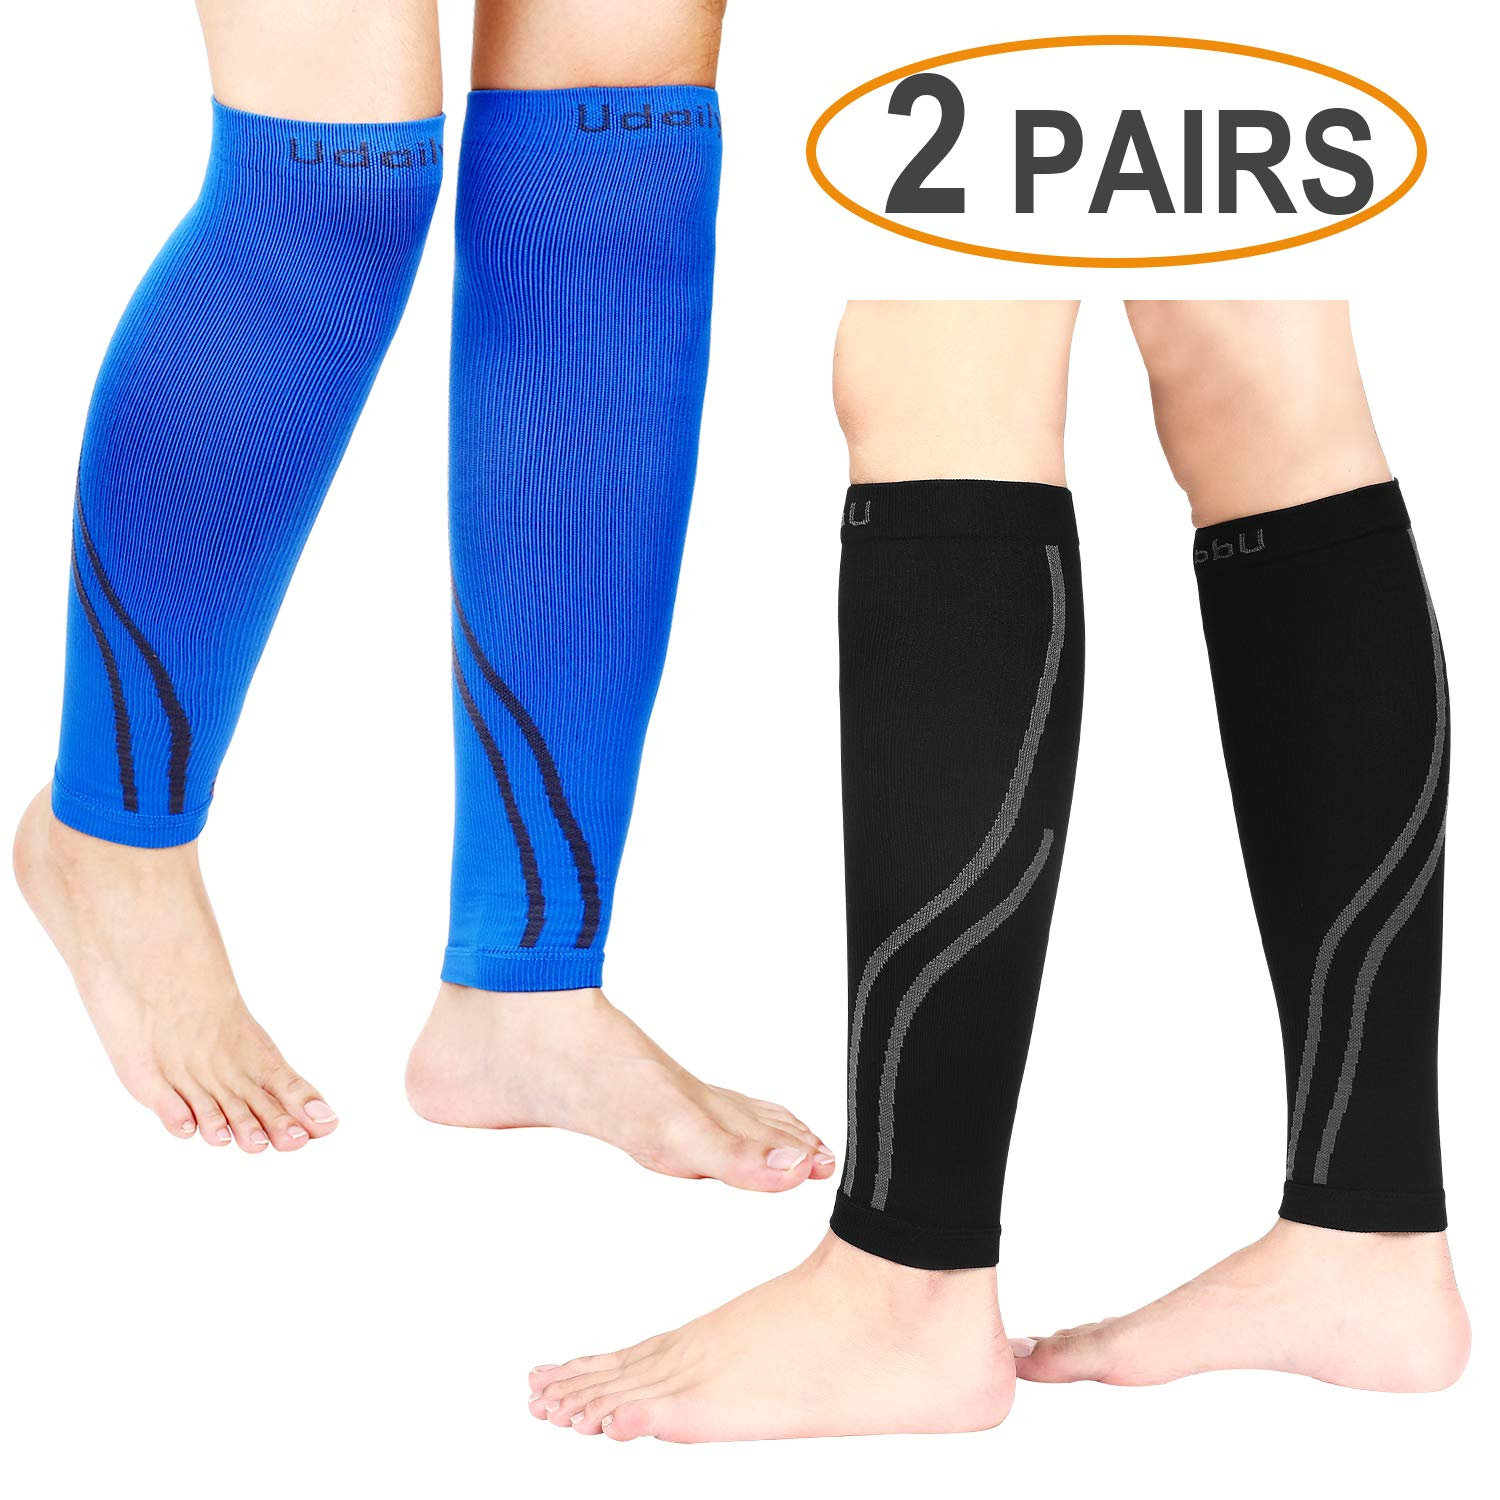 Udaily Calf Compression Sleeves for Men & Women (20-30mmhg) (2 Pairs), Calf Support Leg Compression Socks for Shin Splint & Calf Pain Relief, Sports Running Recovery Improves Blood Circulation